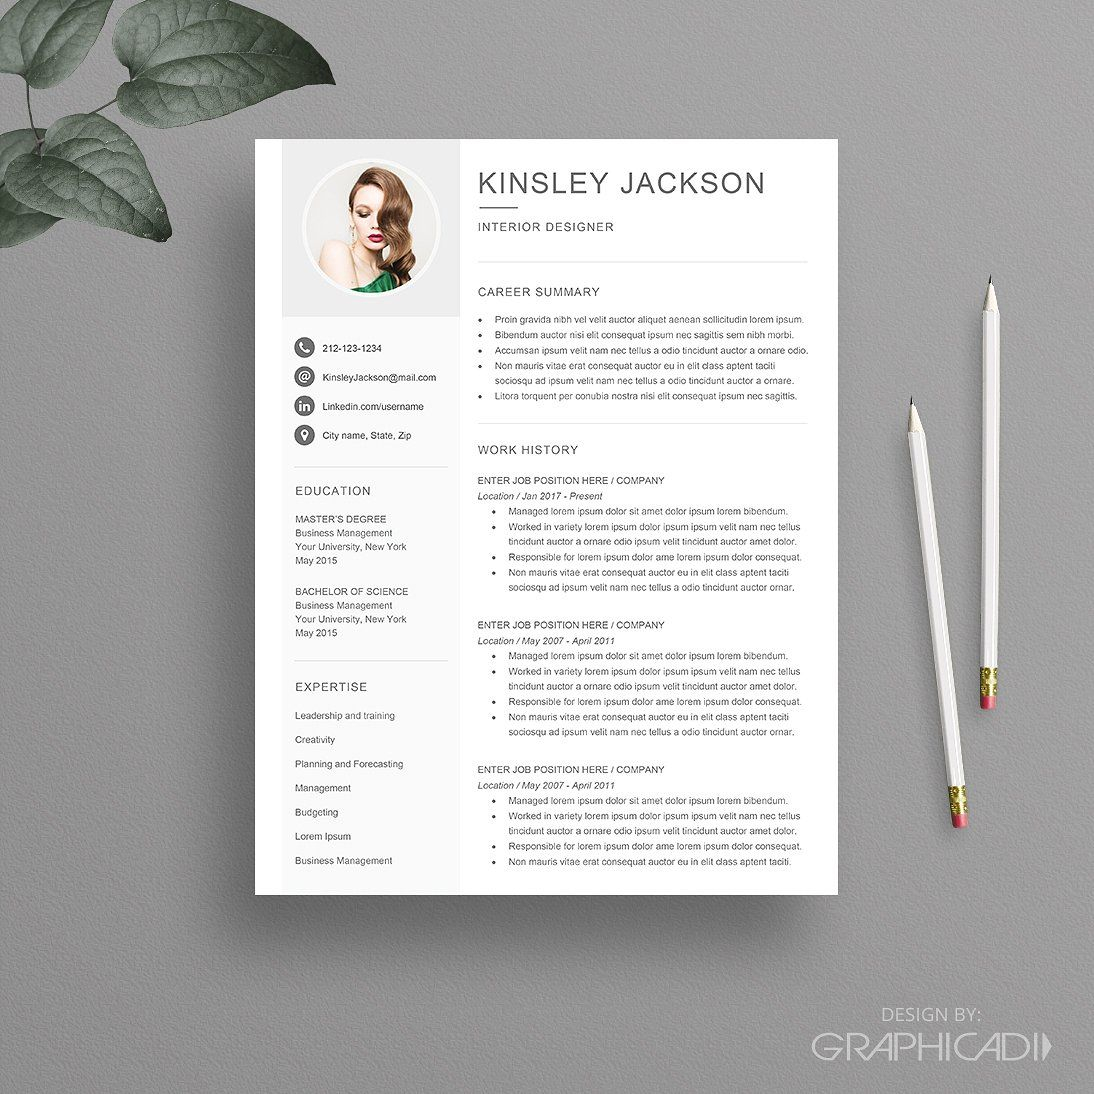 Resume Template For Word Facebooklinkediniconstwitter in size 1094 X 1094